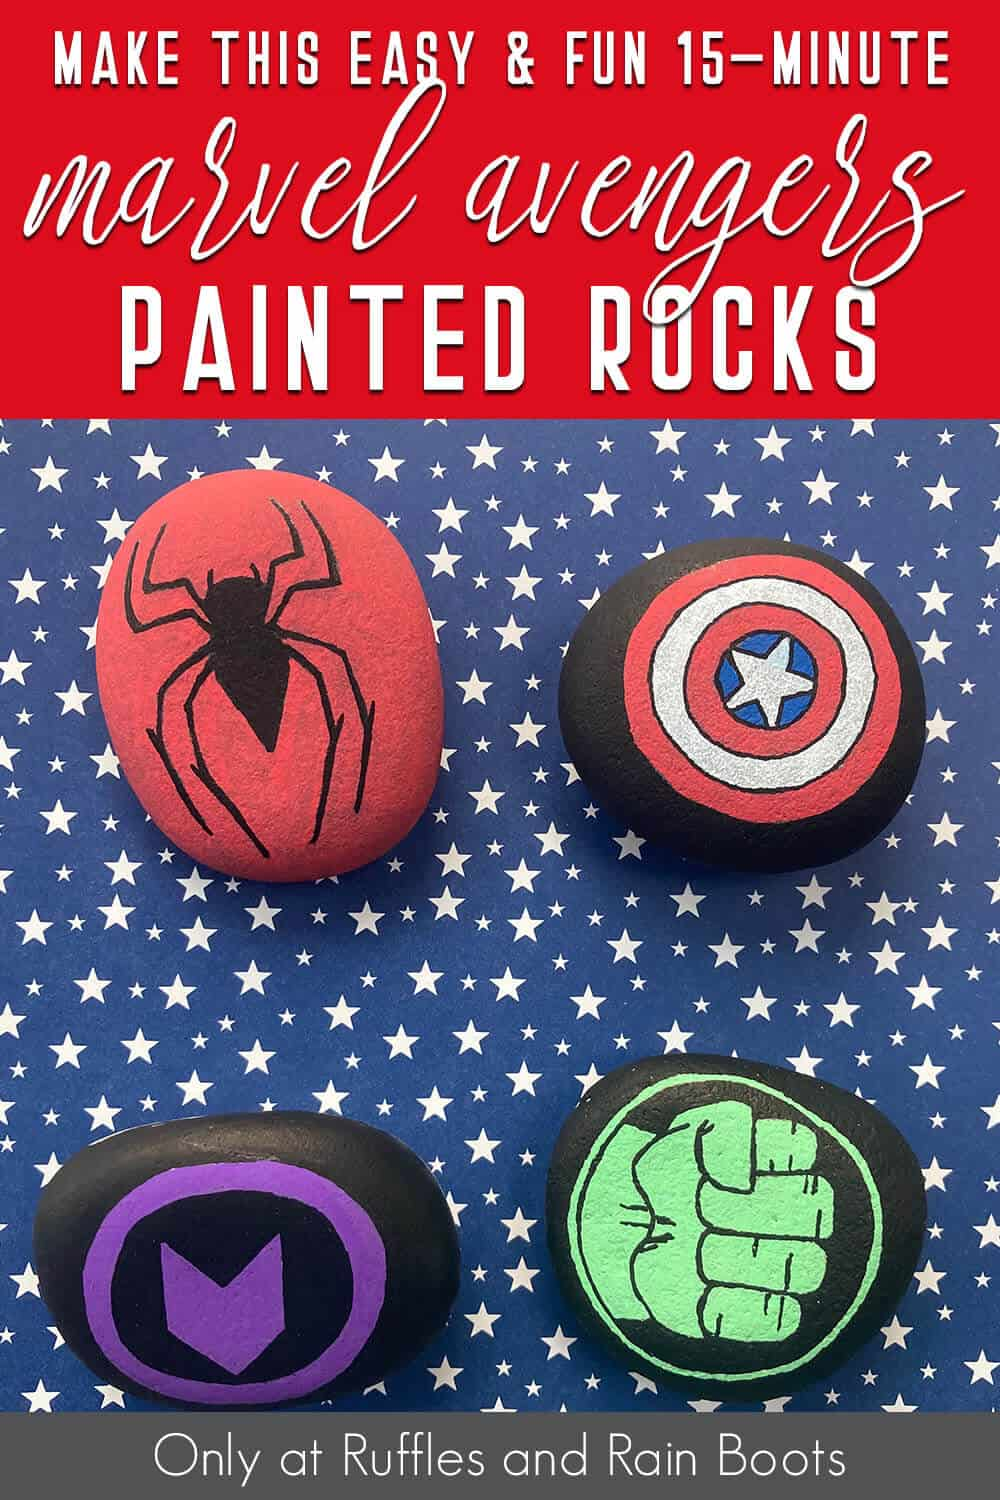 DIY super heroes painted rock instructions with text which reads make these easy & fun 15-minute marvel painted rocks